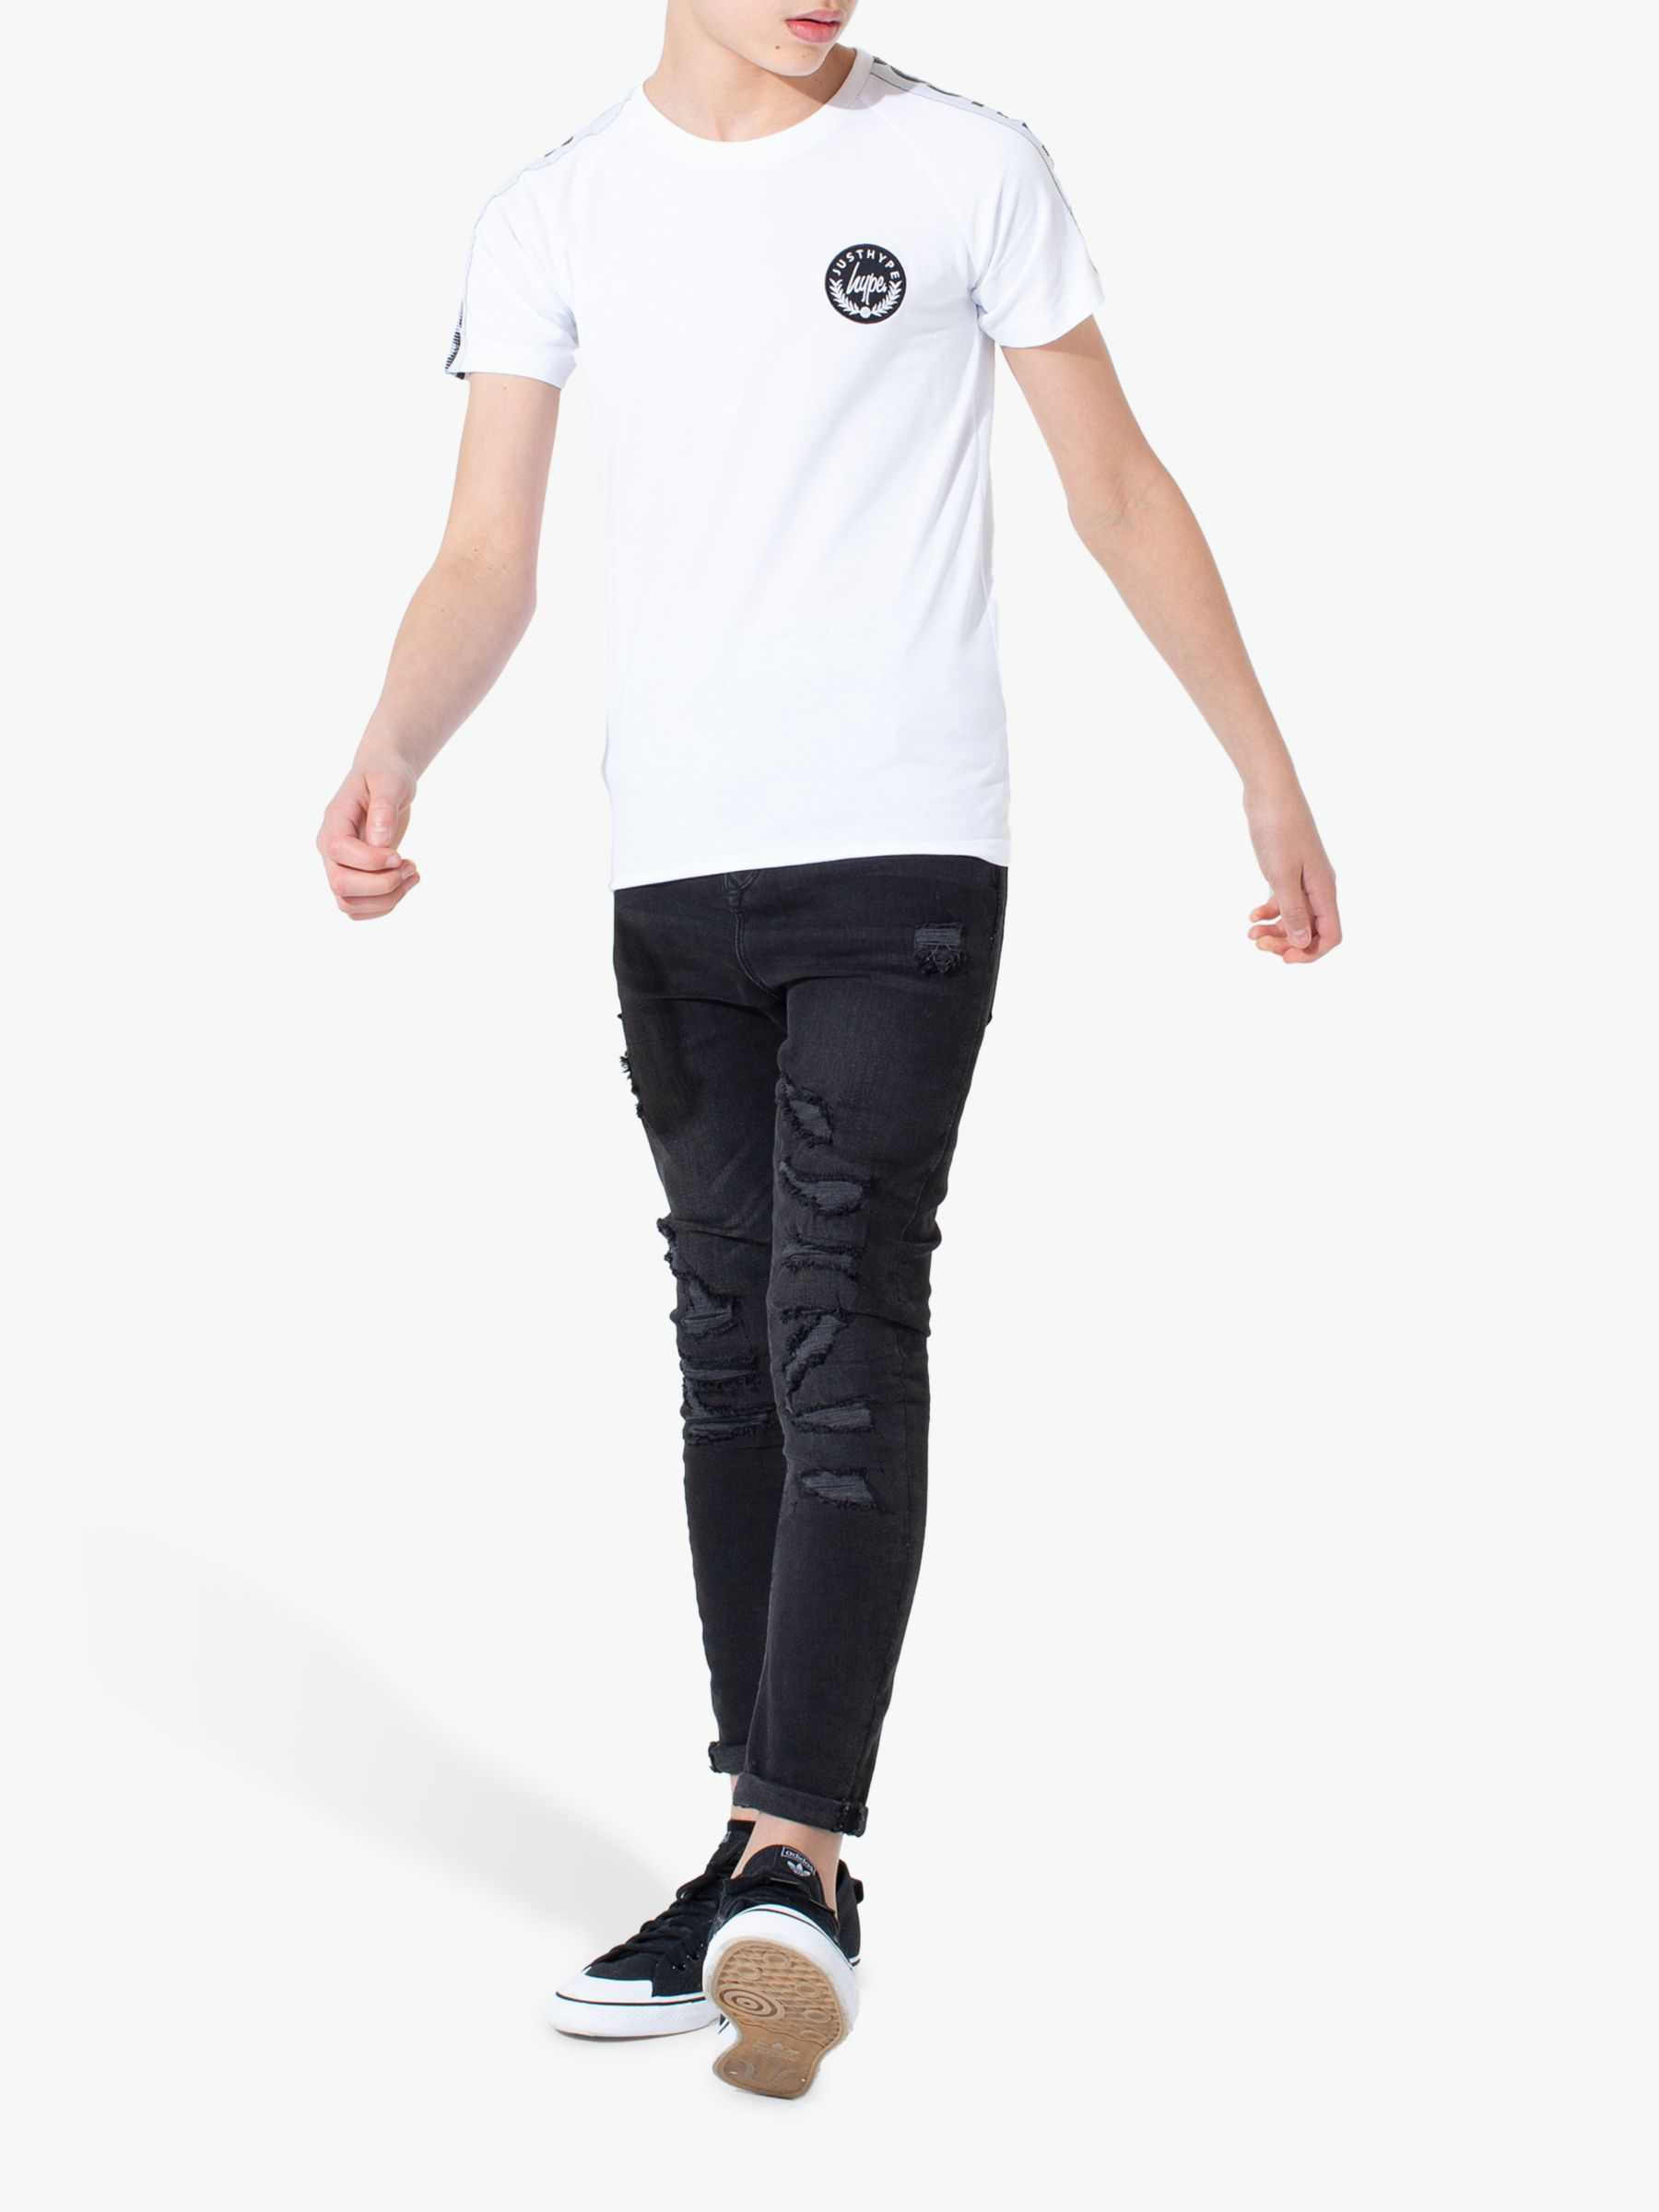 Hype Hype Boys' Speckle Tape T-Shirt, White